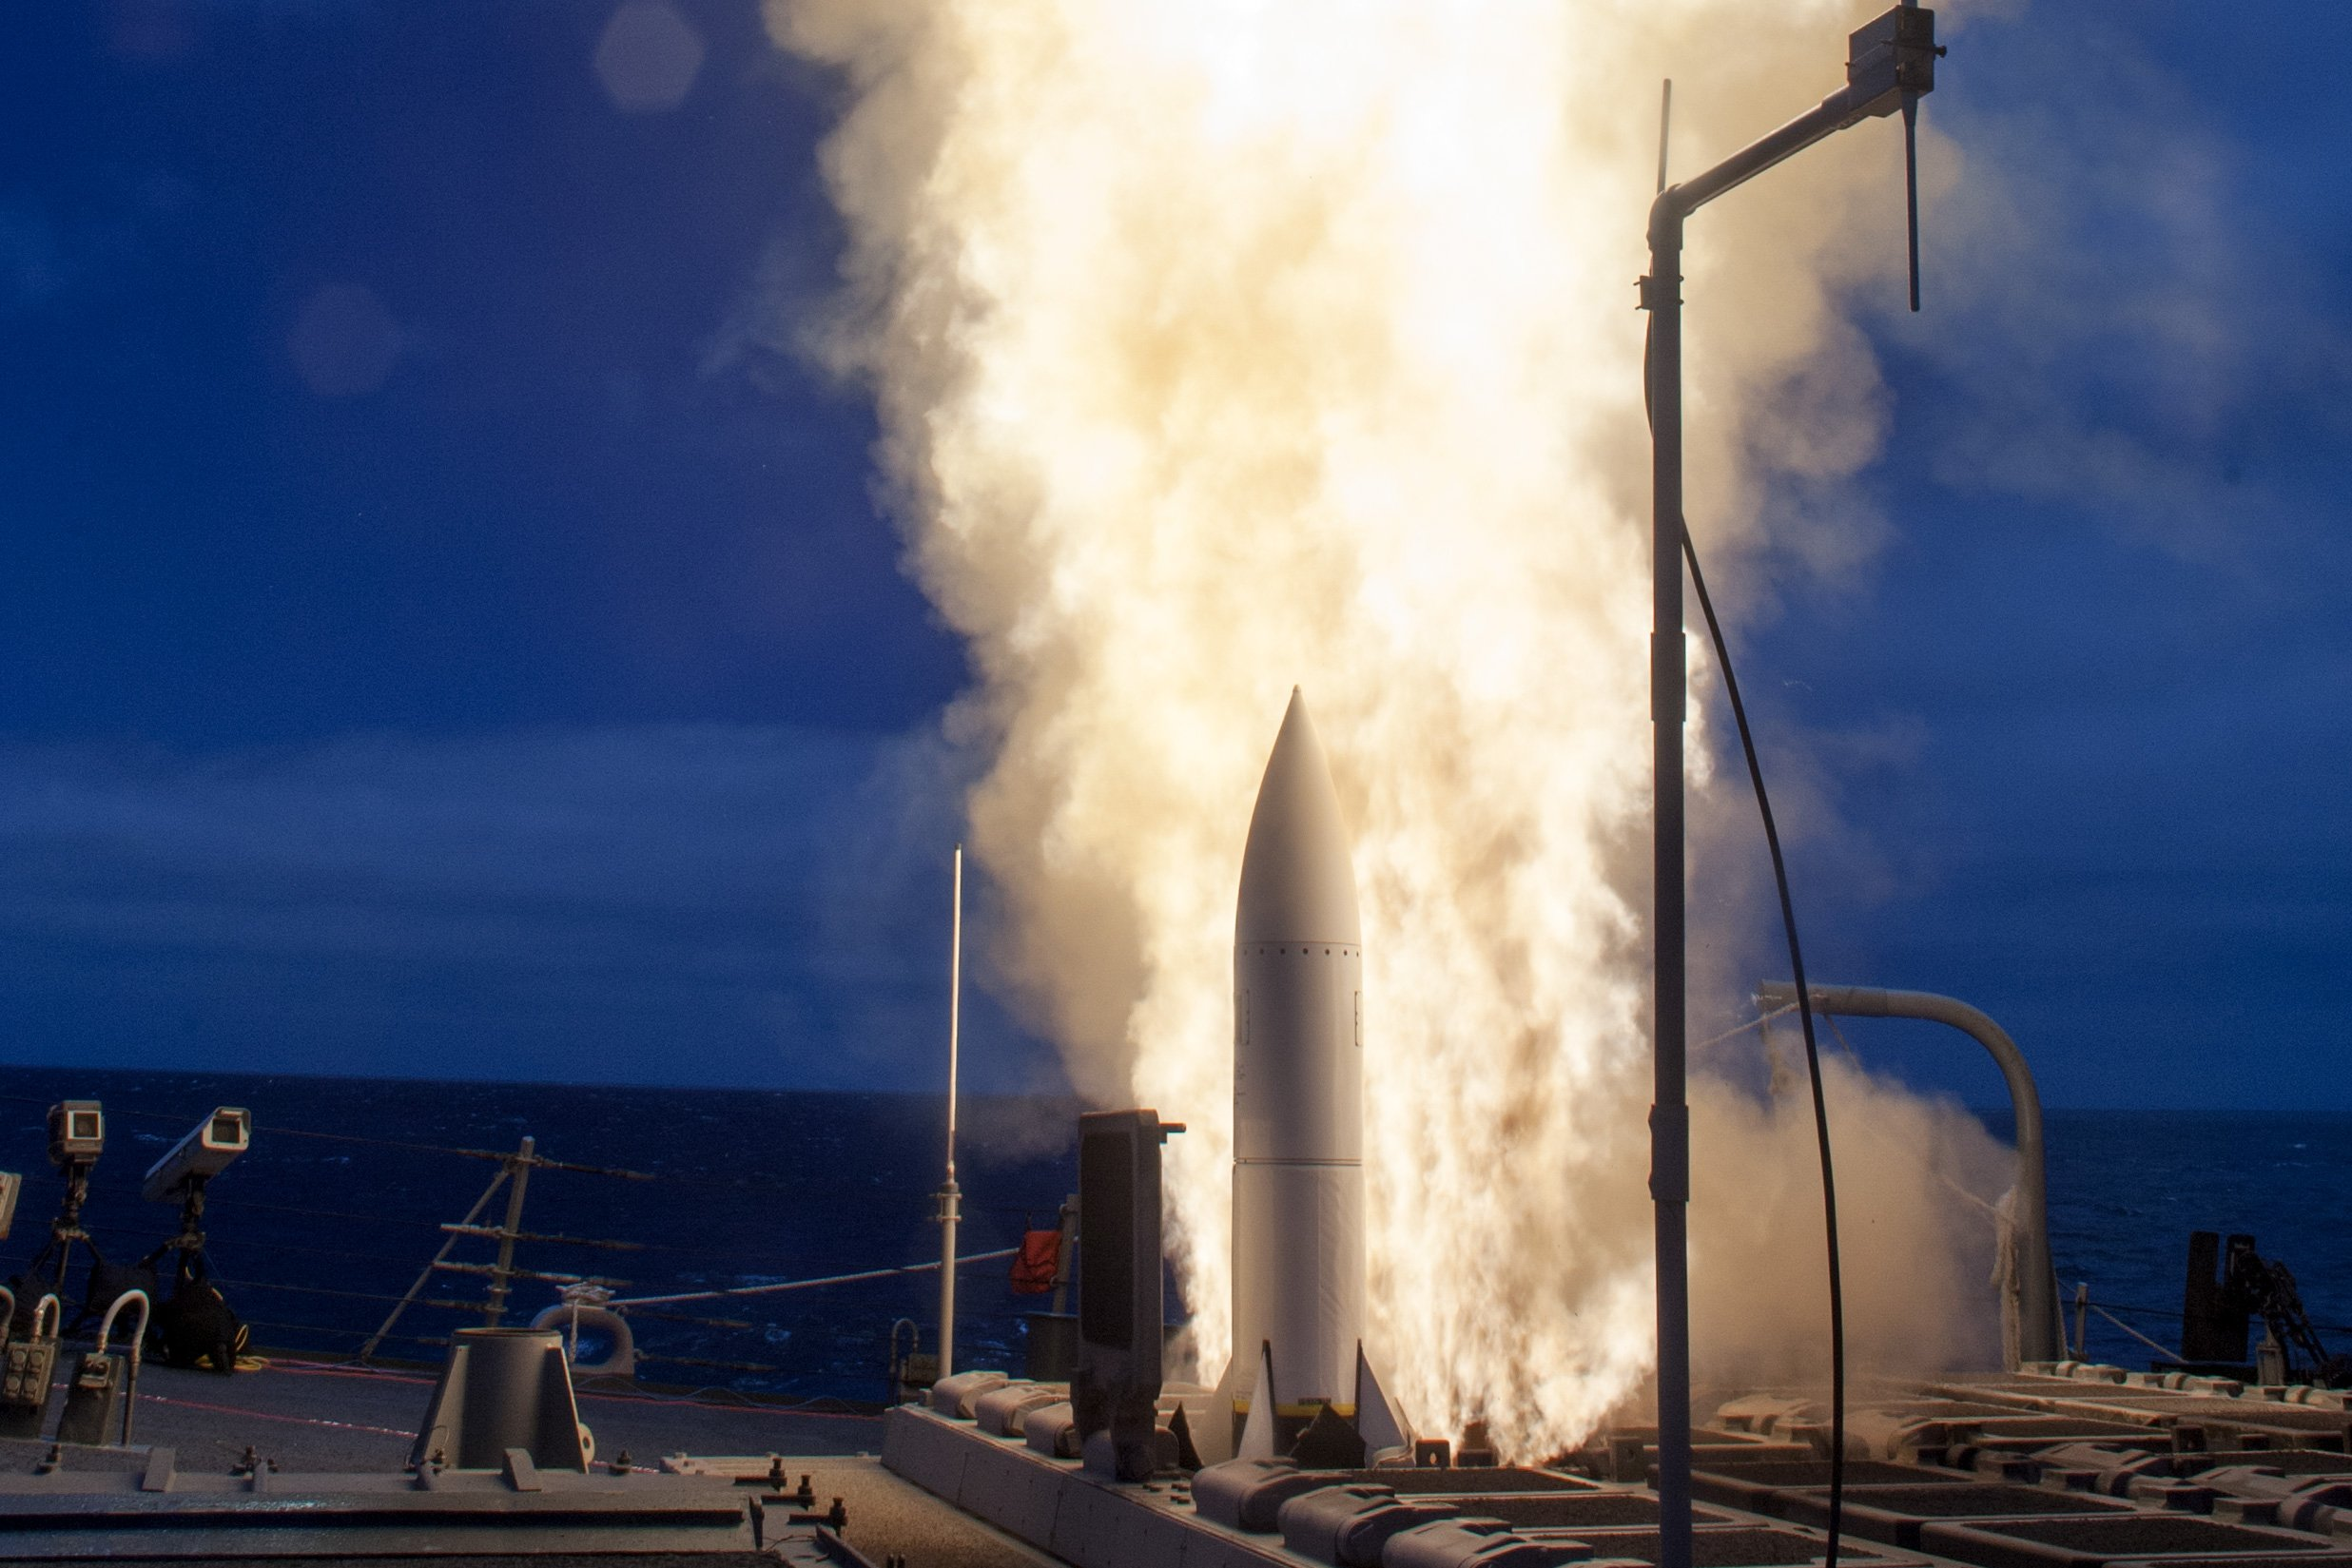 USS John Paul Jones (DDG-53) launches a Standard Missile 6 (SM-6) in 2014. US Navy Photo